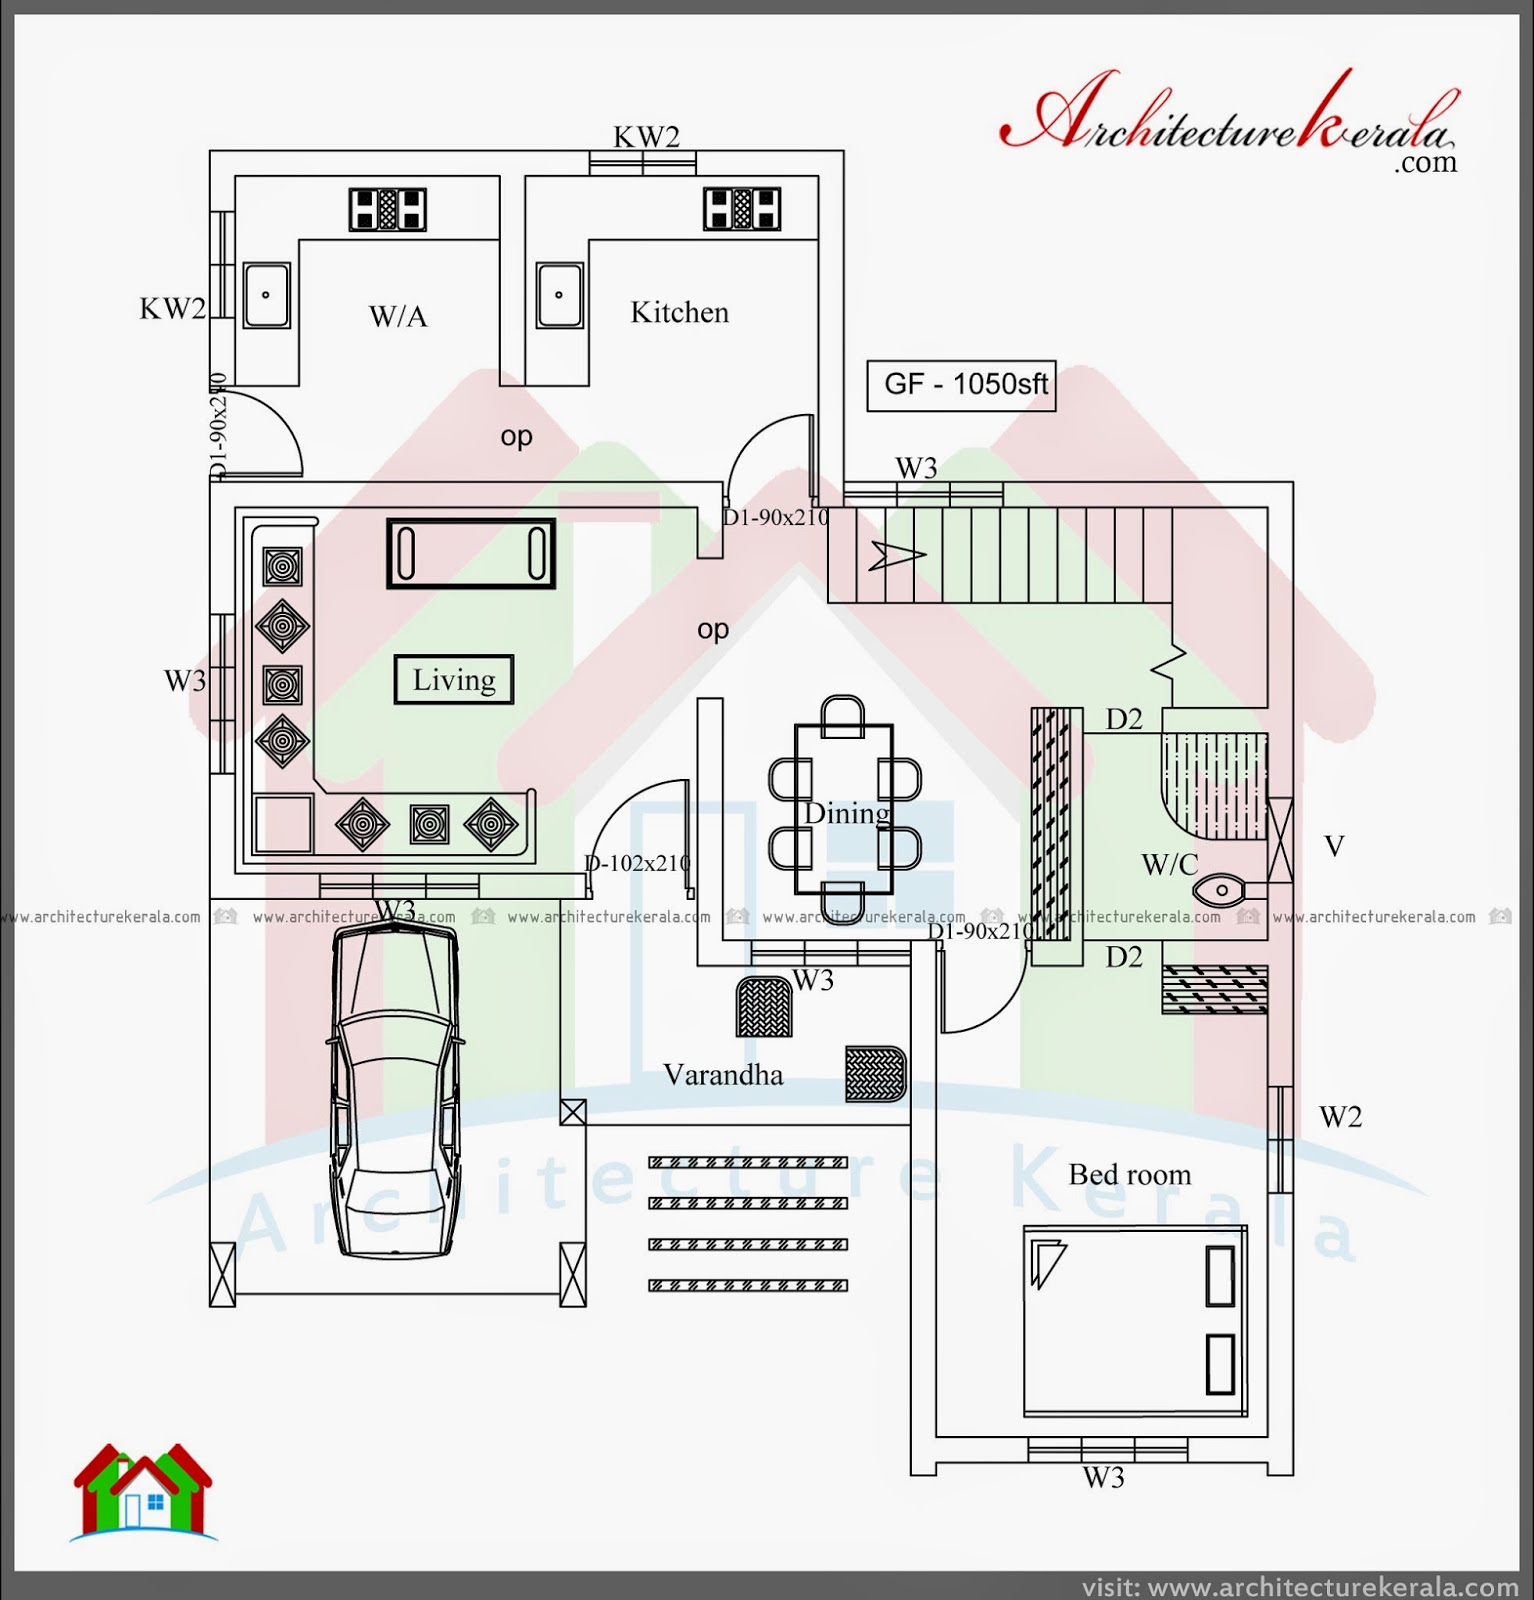 Three bedroom two storey house plan architecture kerala for House plans in kerala